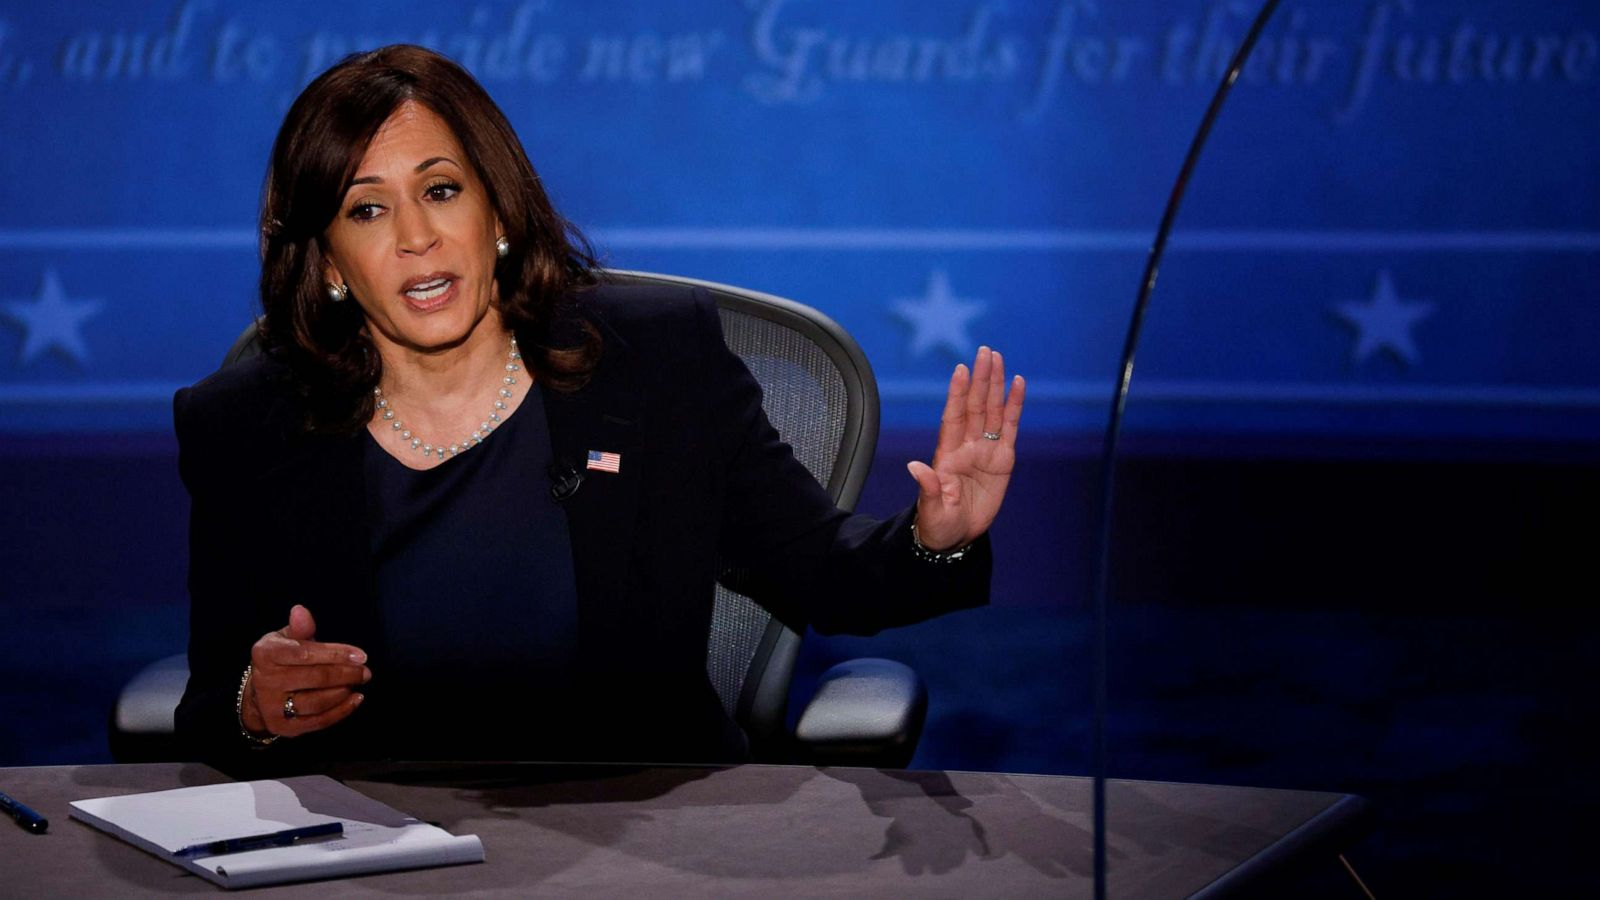 Trump Insults Harris As A Monster Morning After Vice Presidential Debate Abc News